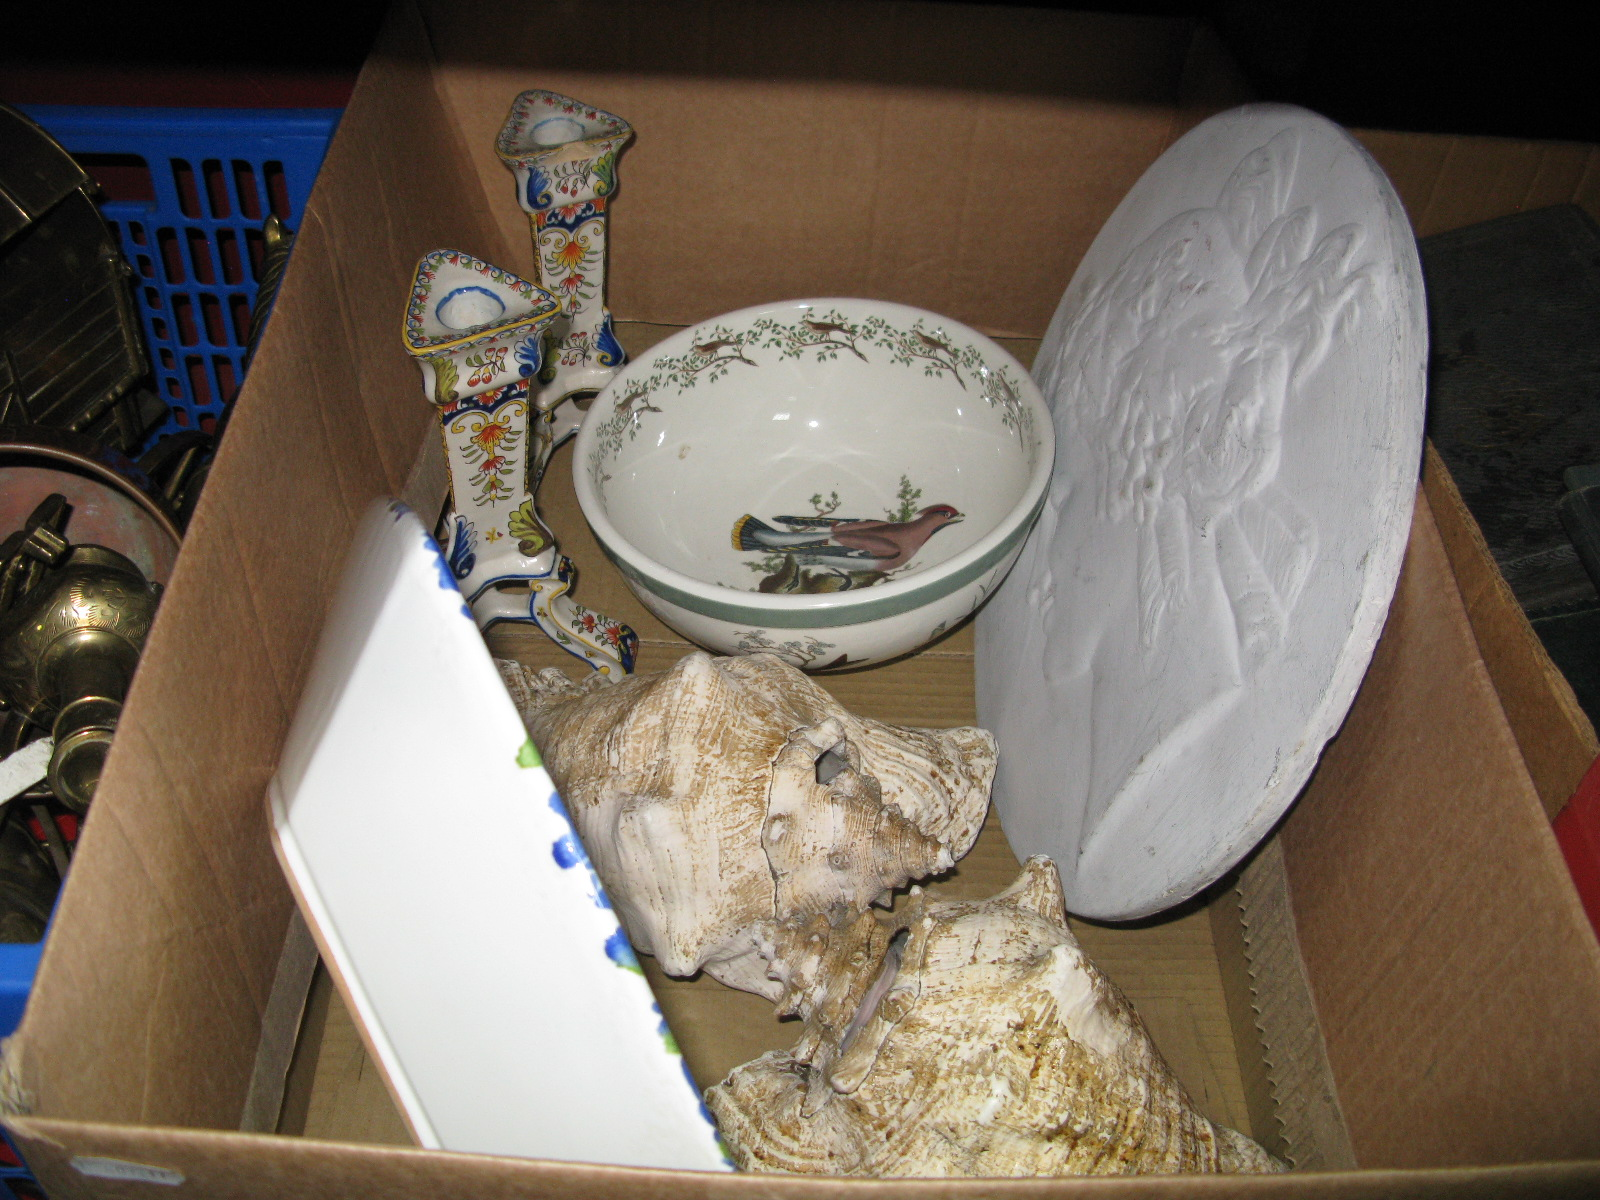 Lot 1024 - Portmeirion Bowl, pair of Delph candlesticks, plaster wall plaque, shells:- One Box